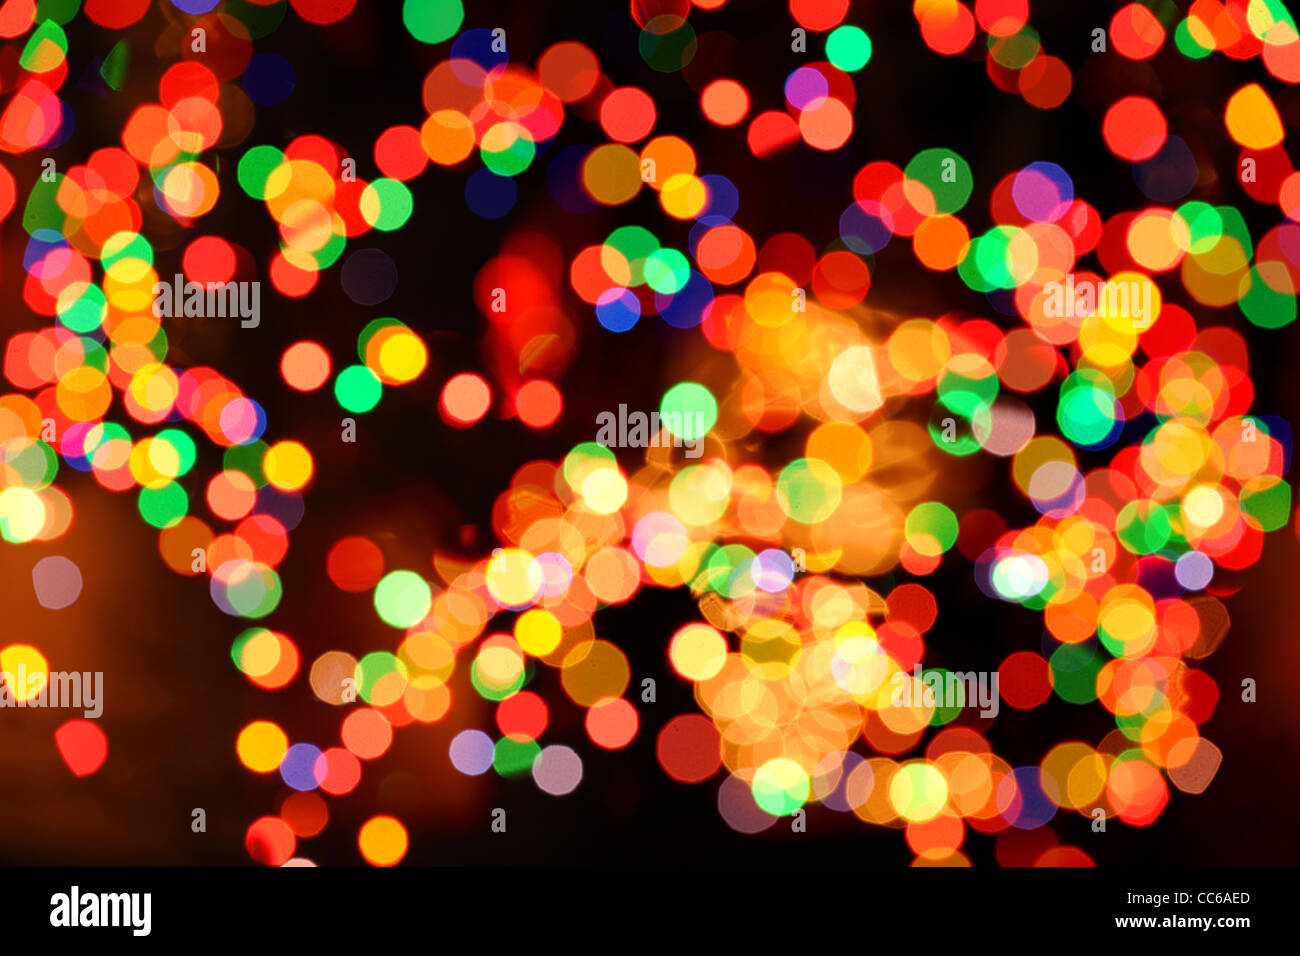 Christmas lights out of focus as a background - Stock Image